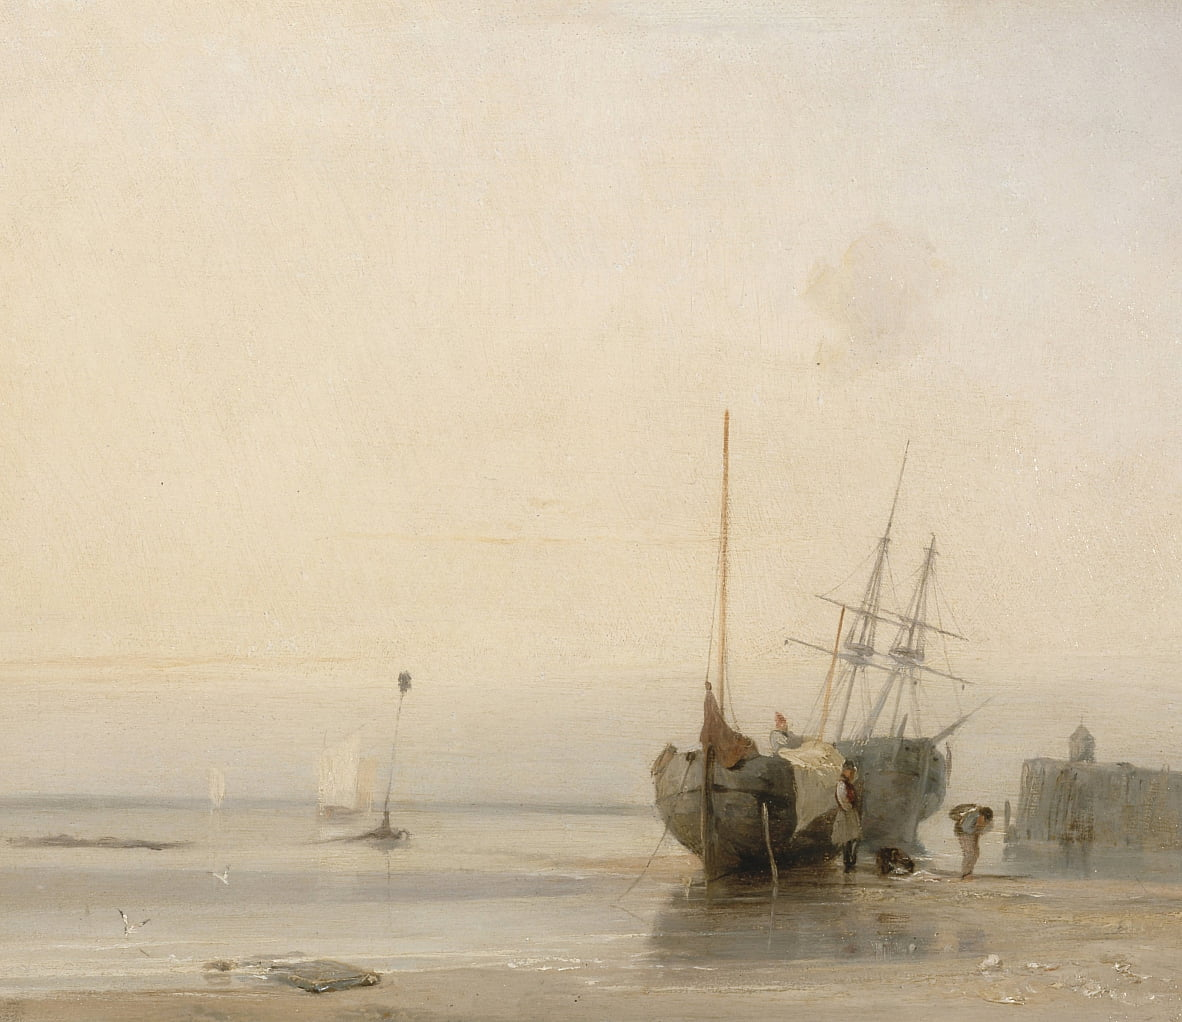 Calais Jetty, France - Richard Parkes Bonington